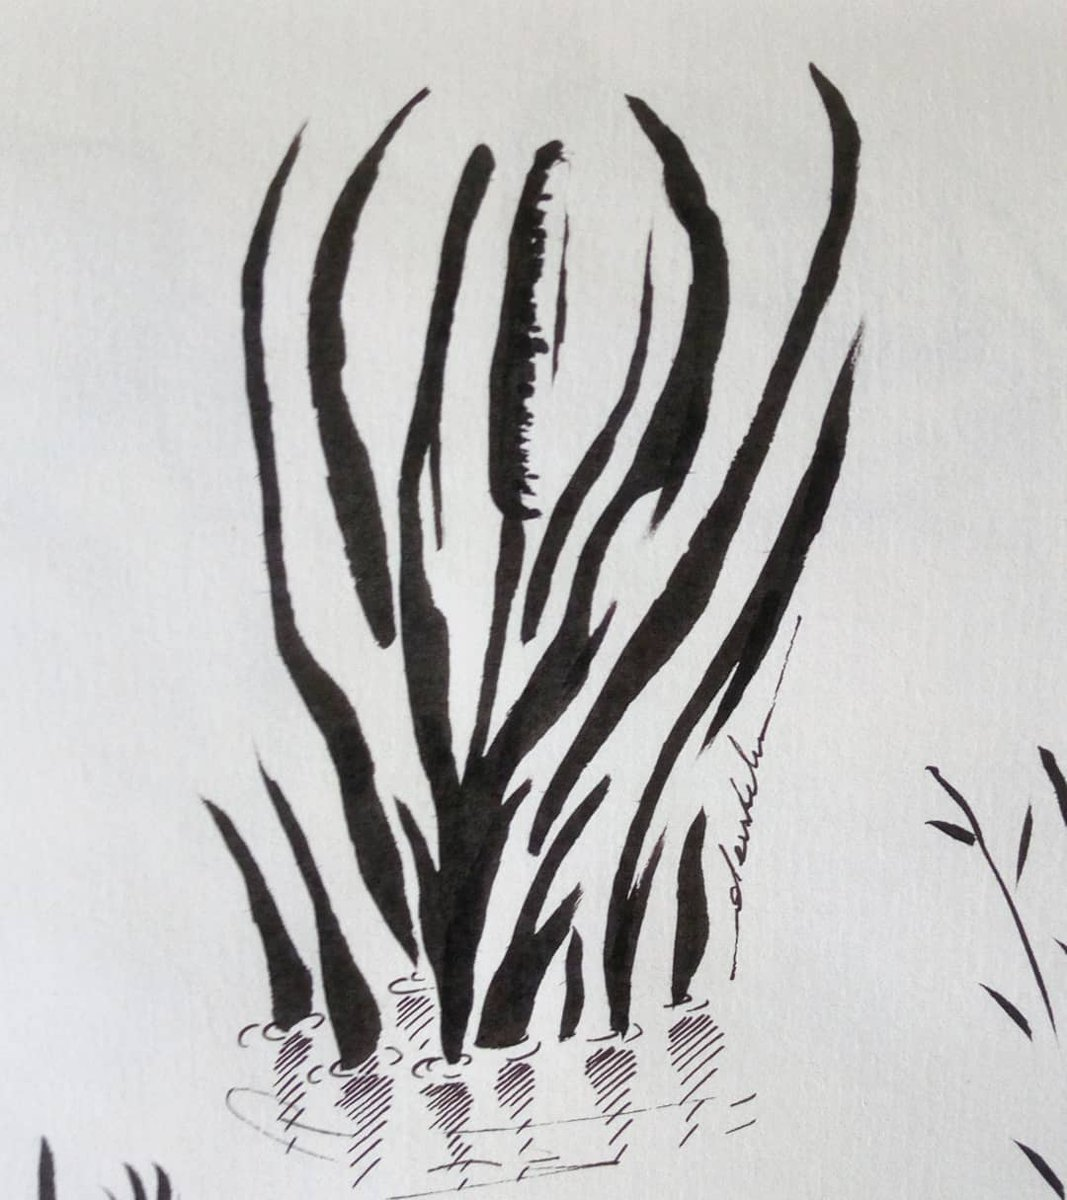 Reeds, research #dailyart #dailyillustration #nature #reeds #artstudy #comicbookproject https://t.co/WCbnTK9Lm6